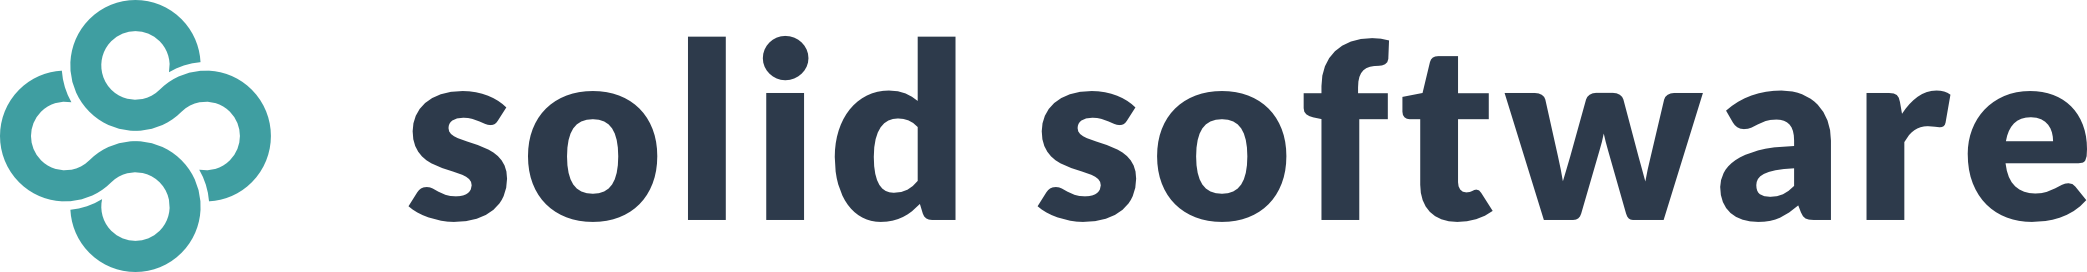 Solid Software LLC Logo